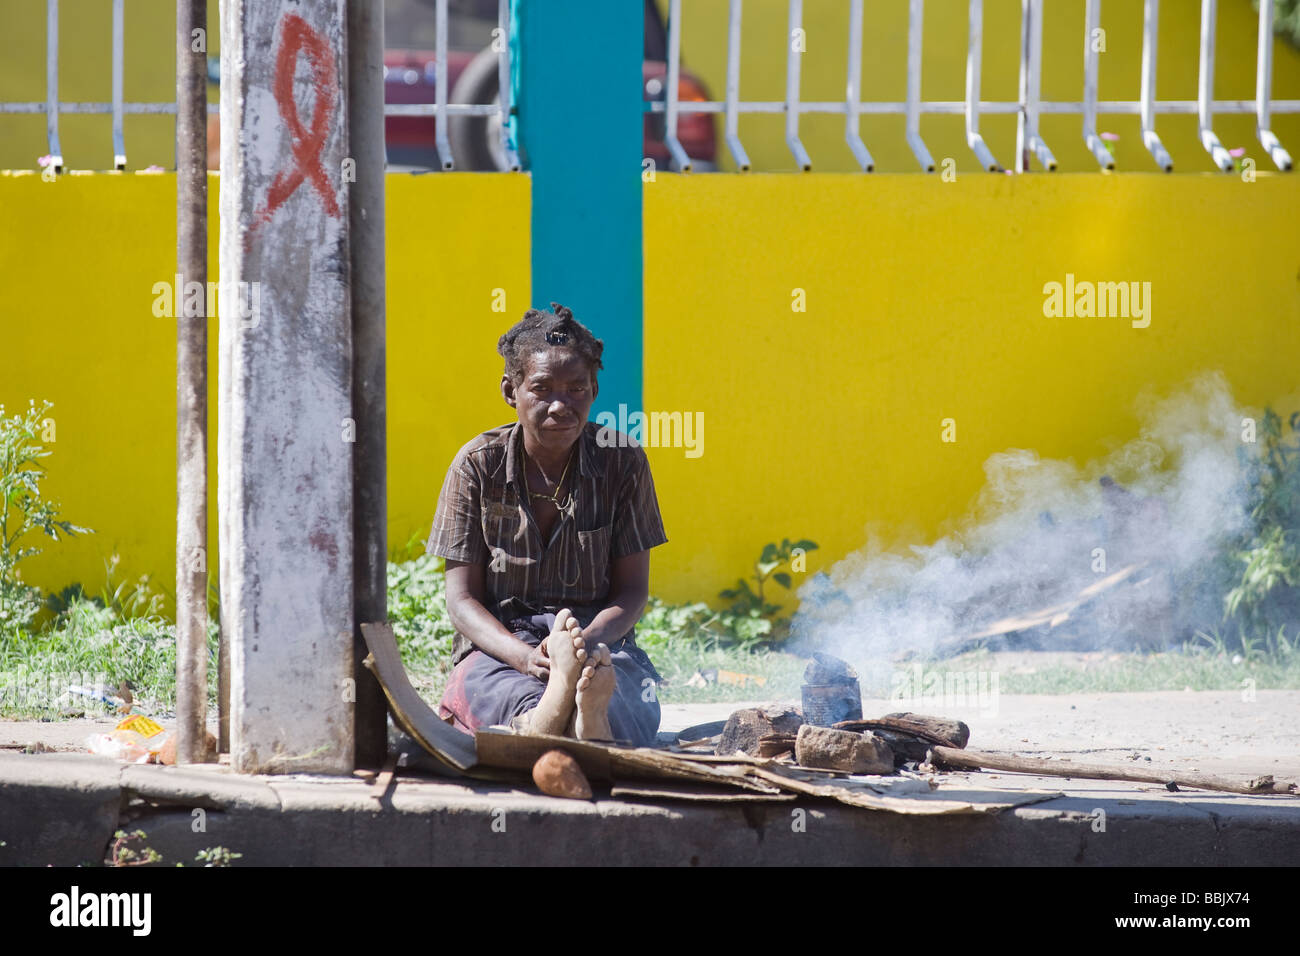 Homeless woman cooking on the sidewalk Quelimane Mozambique - Stock Image